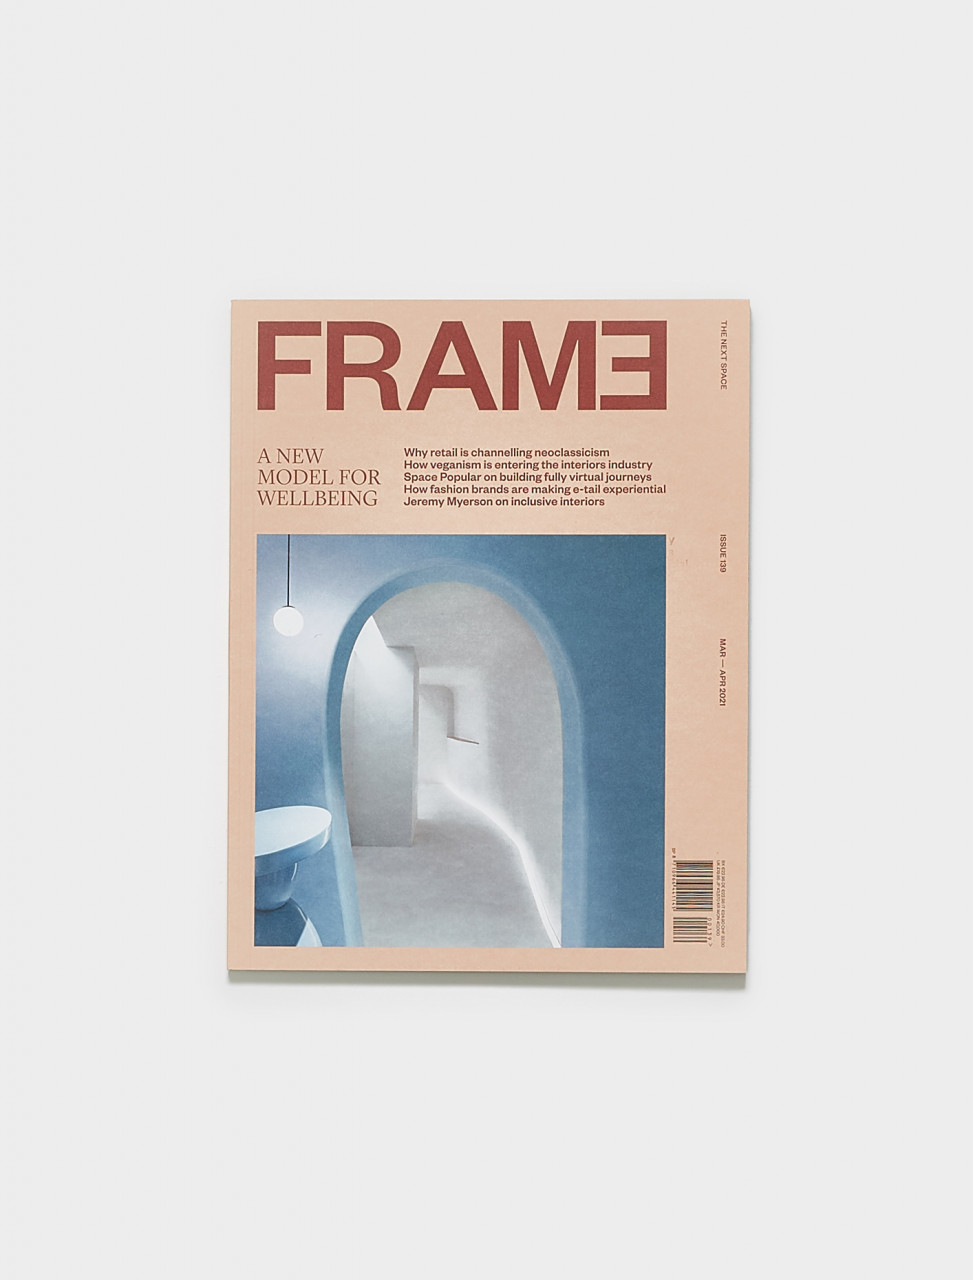 Frame Magazine Issue 139 - A New Model for Wellbeing